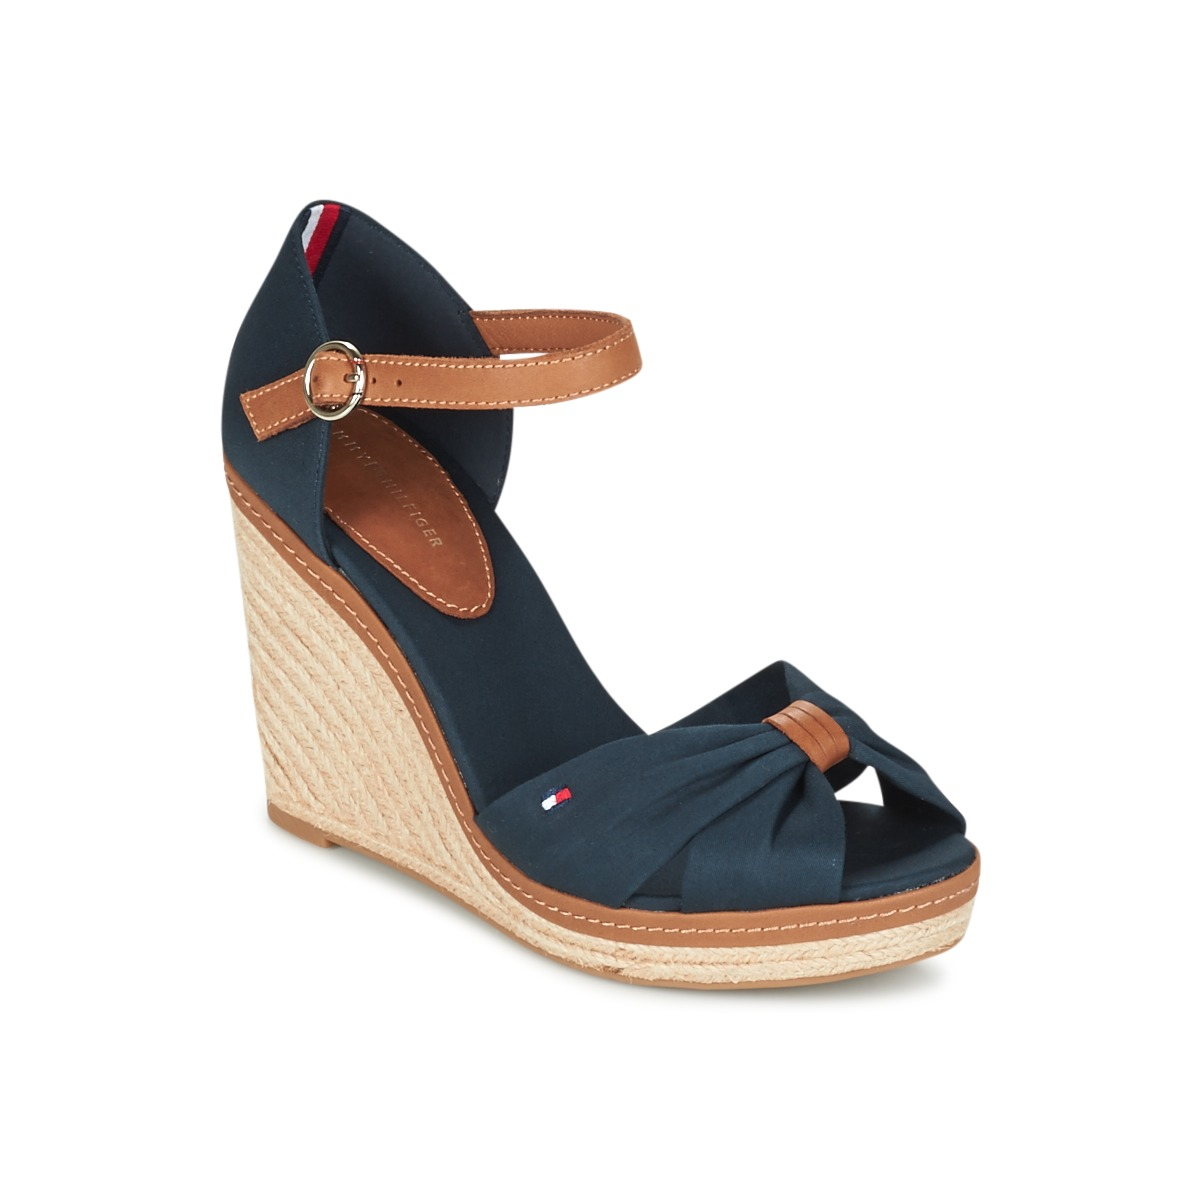 Tommy Hilfiger ELENA 56D Marine / Brown - Fast delivery with Spartoo Europe  ! - Shoes Sandals Women 89,90 €